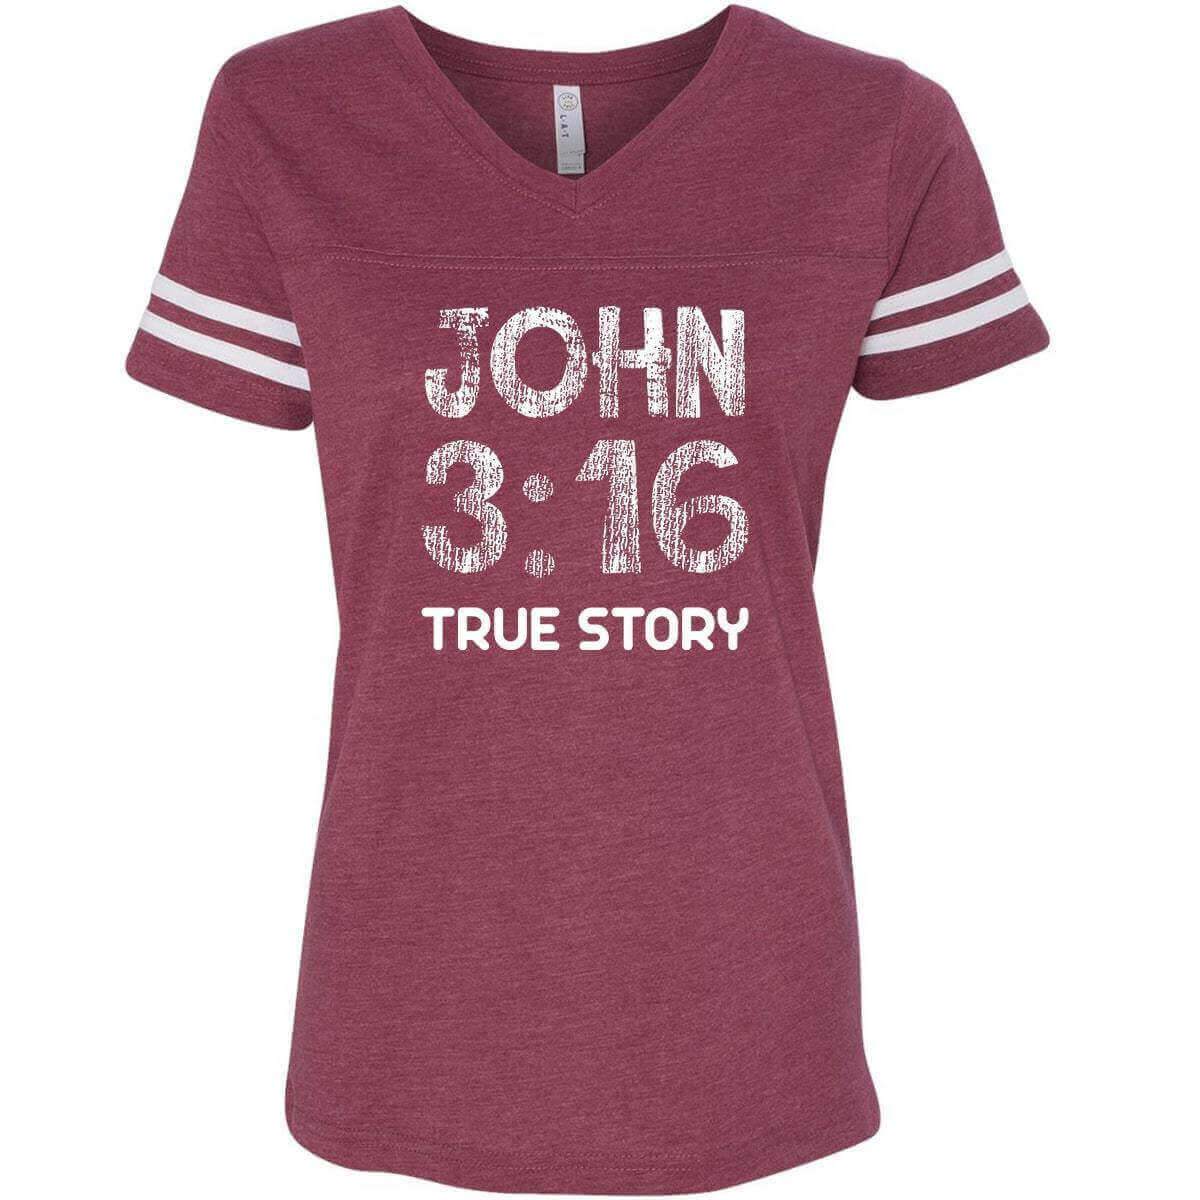 John 3 16 True Story Christian V Neck Football Jersey T Shirt